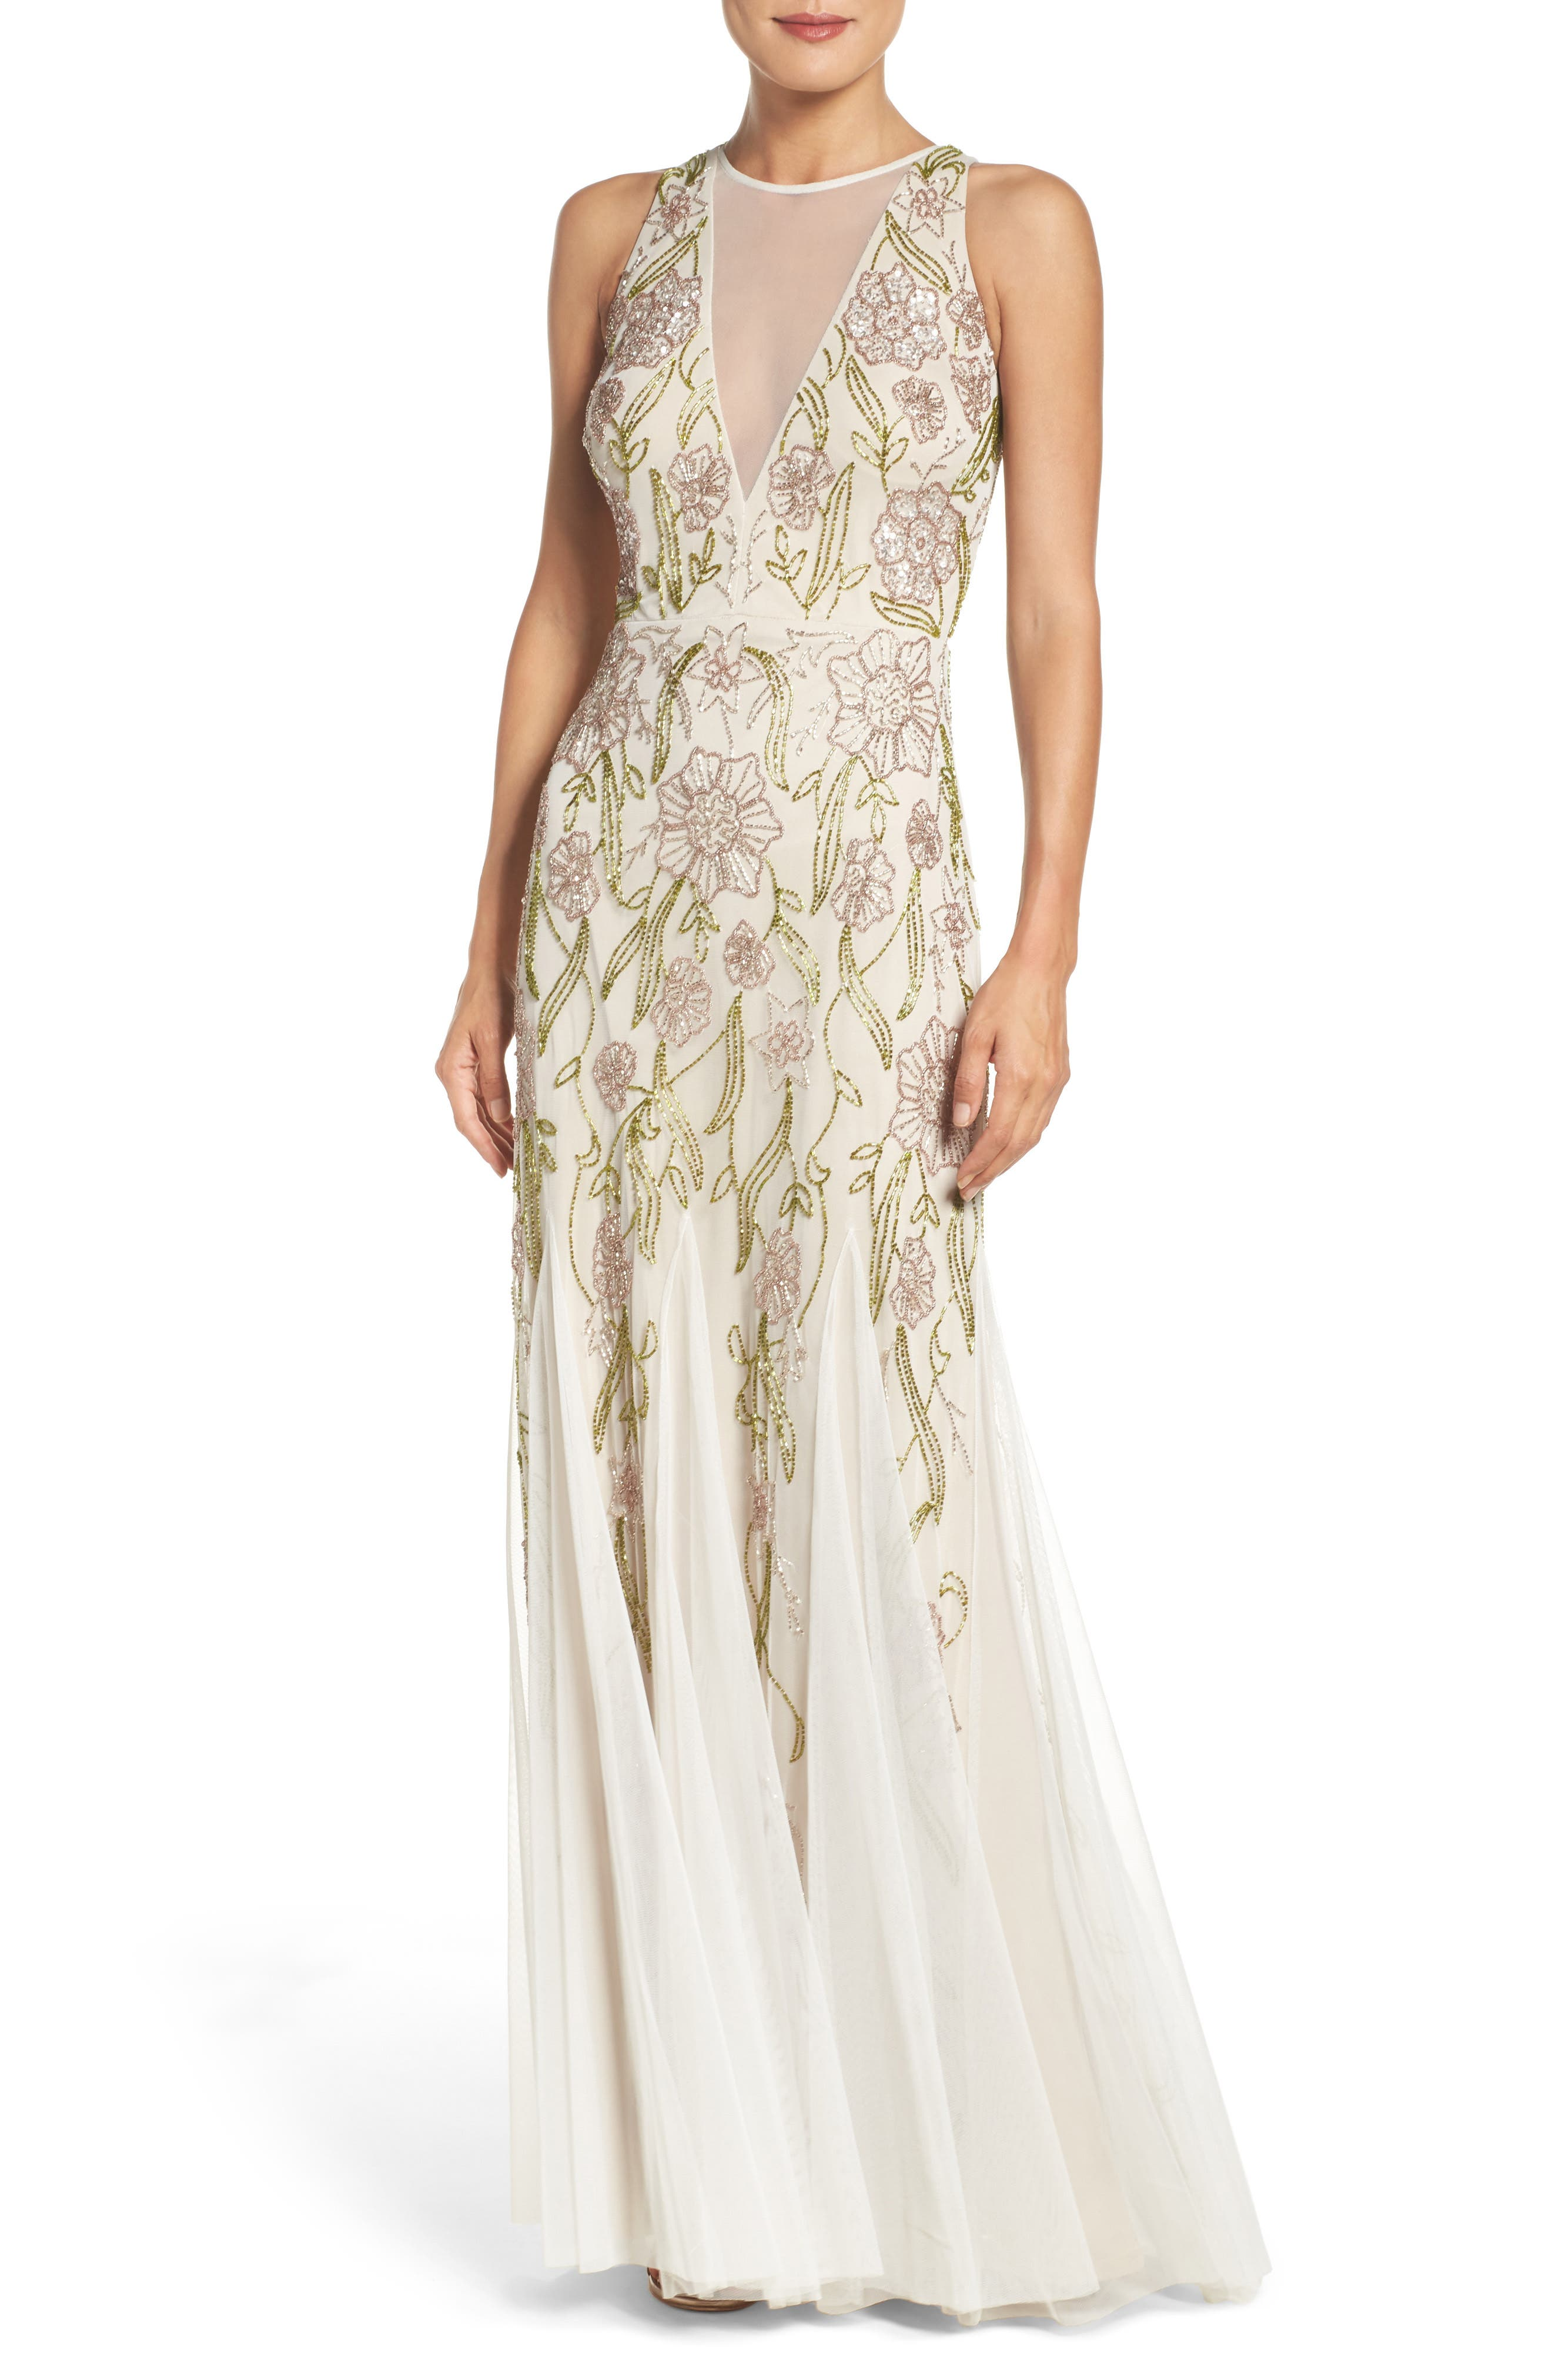 Alternate Image 1 Selected - Adrianna Papell Mesh Mermaid Gown